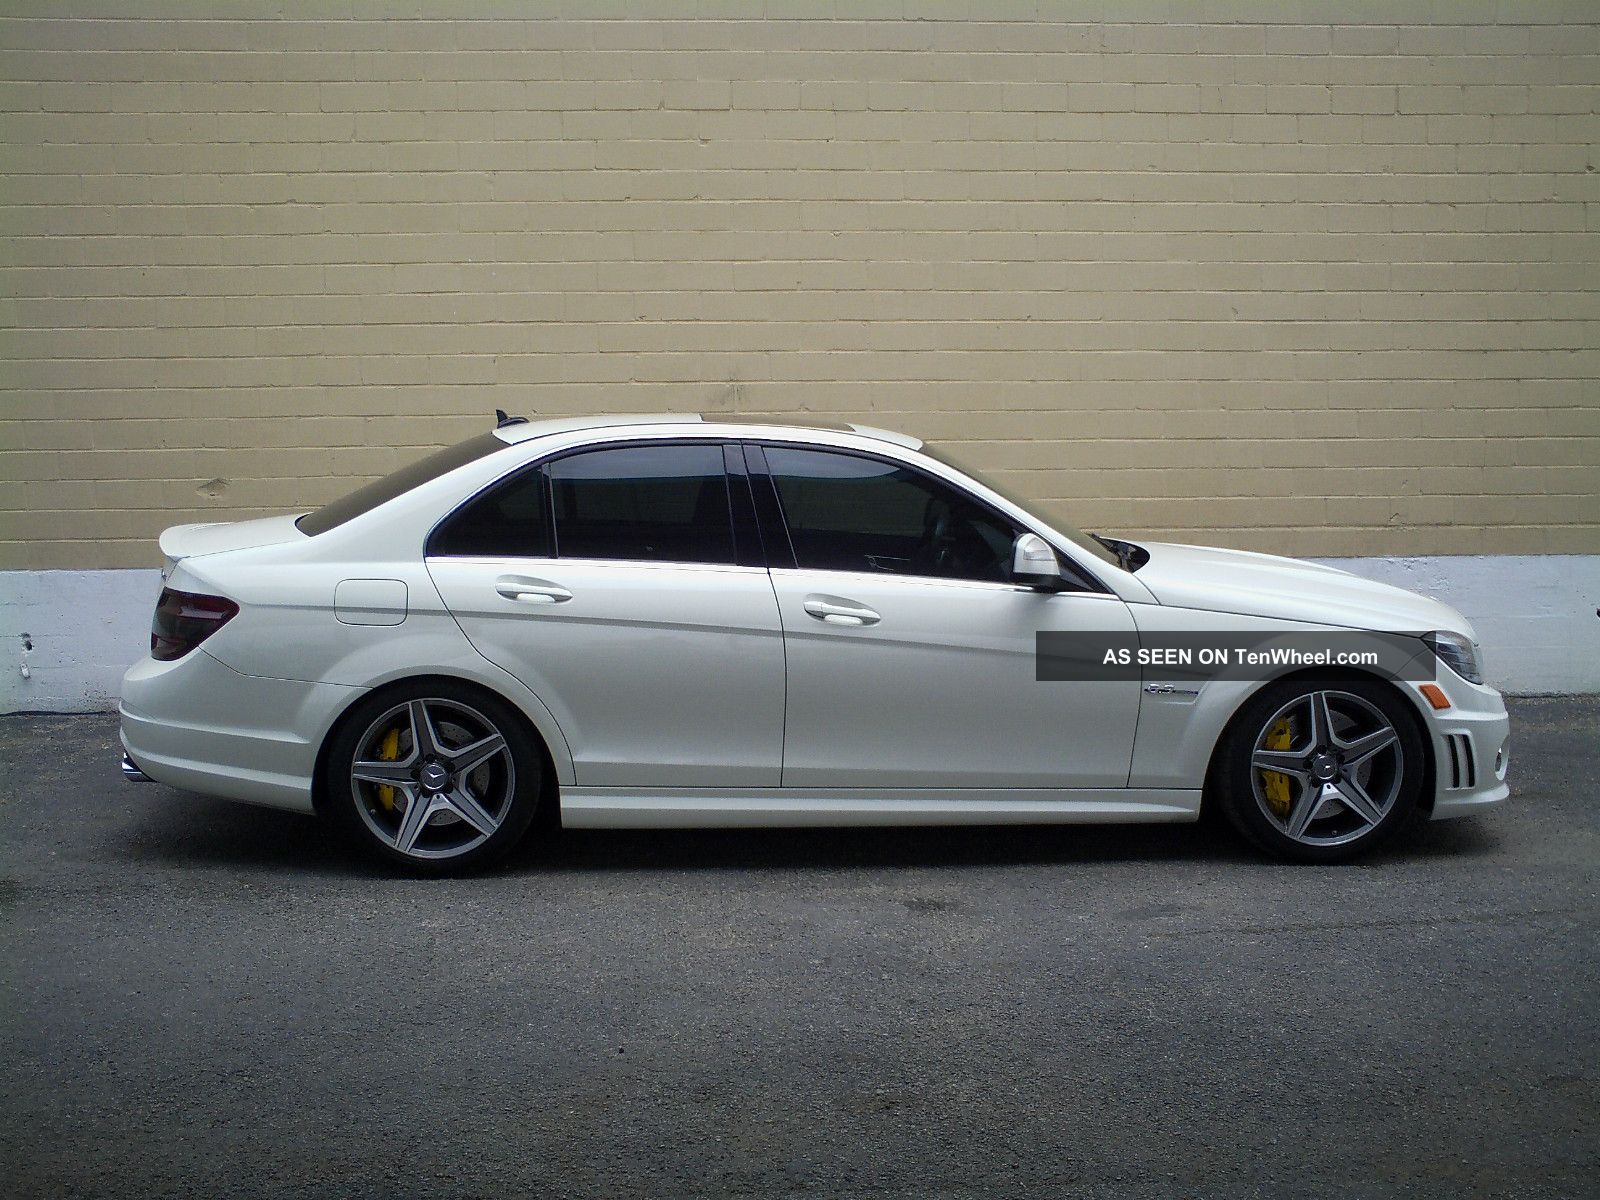 2009 mercedes benz c63 amg base sedan 4 door 6 3l for Mercedes benz amg 6 3